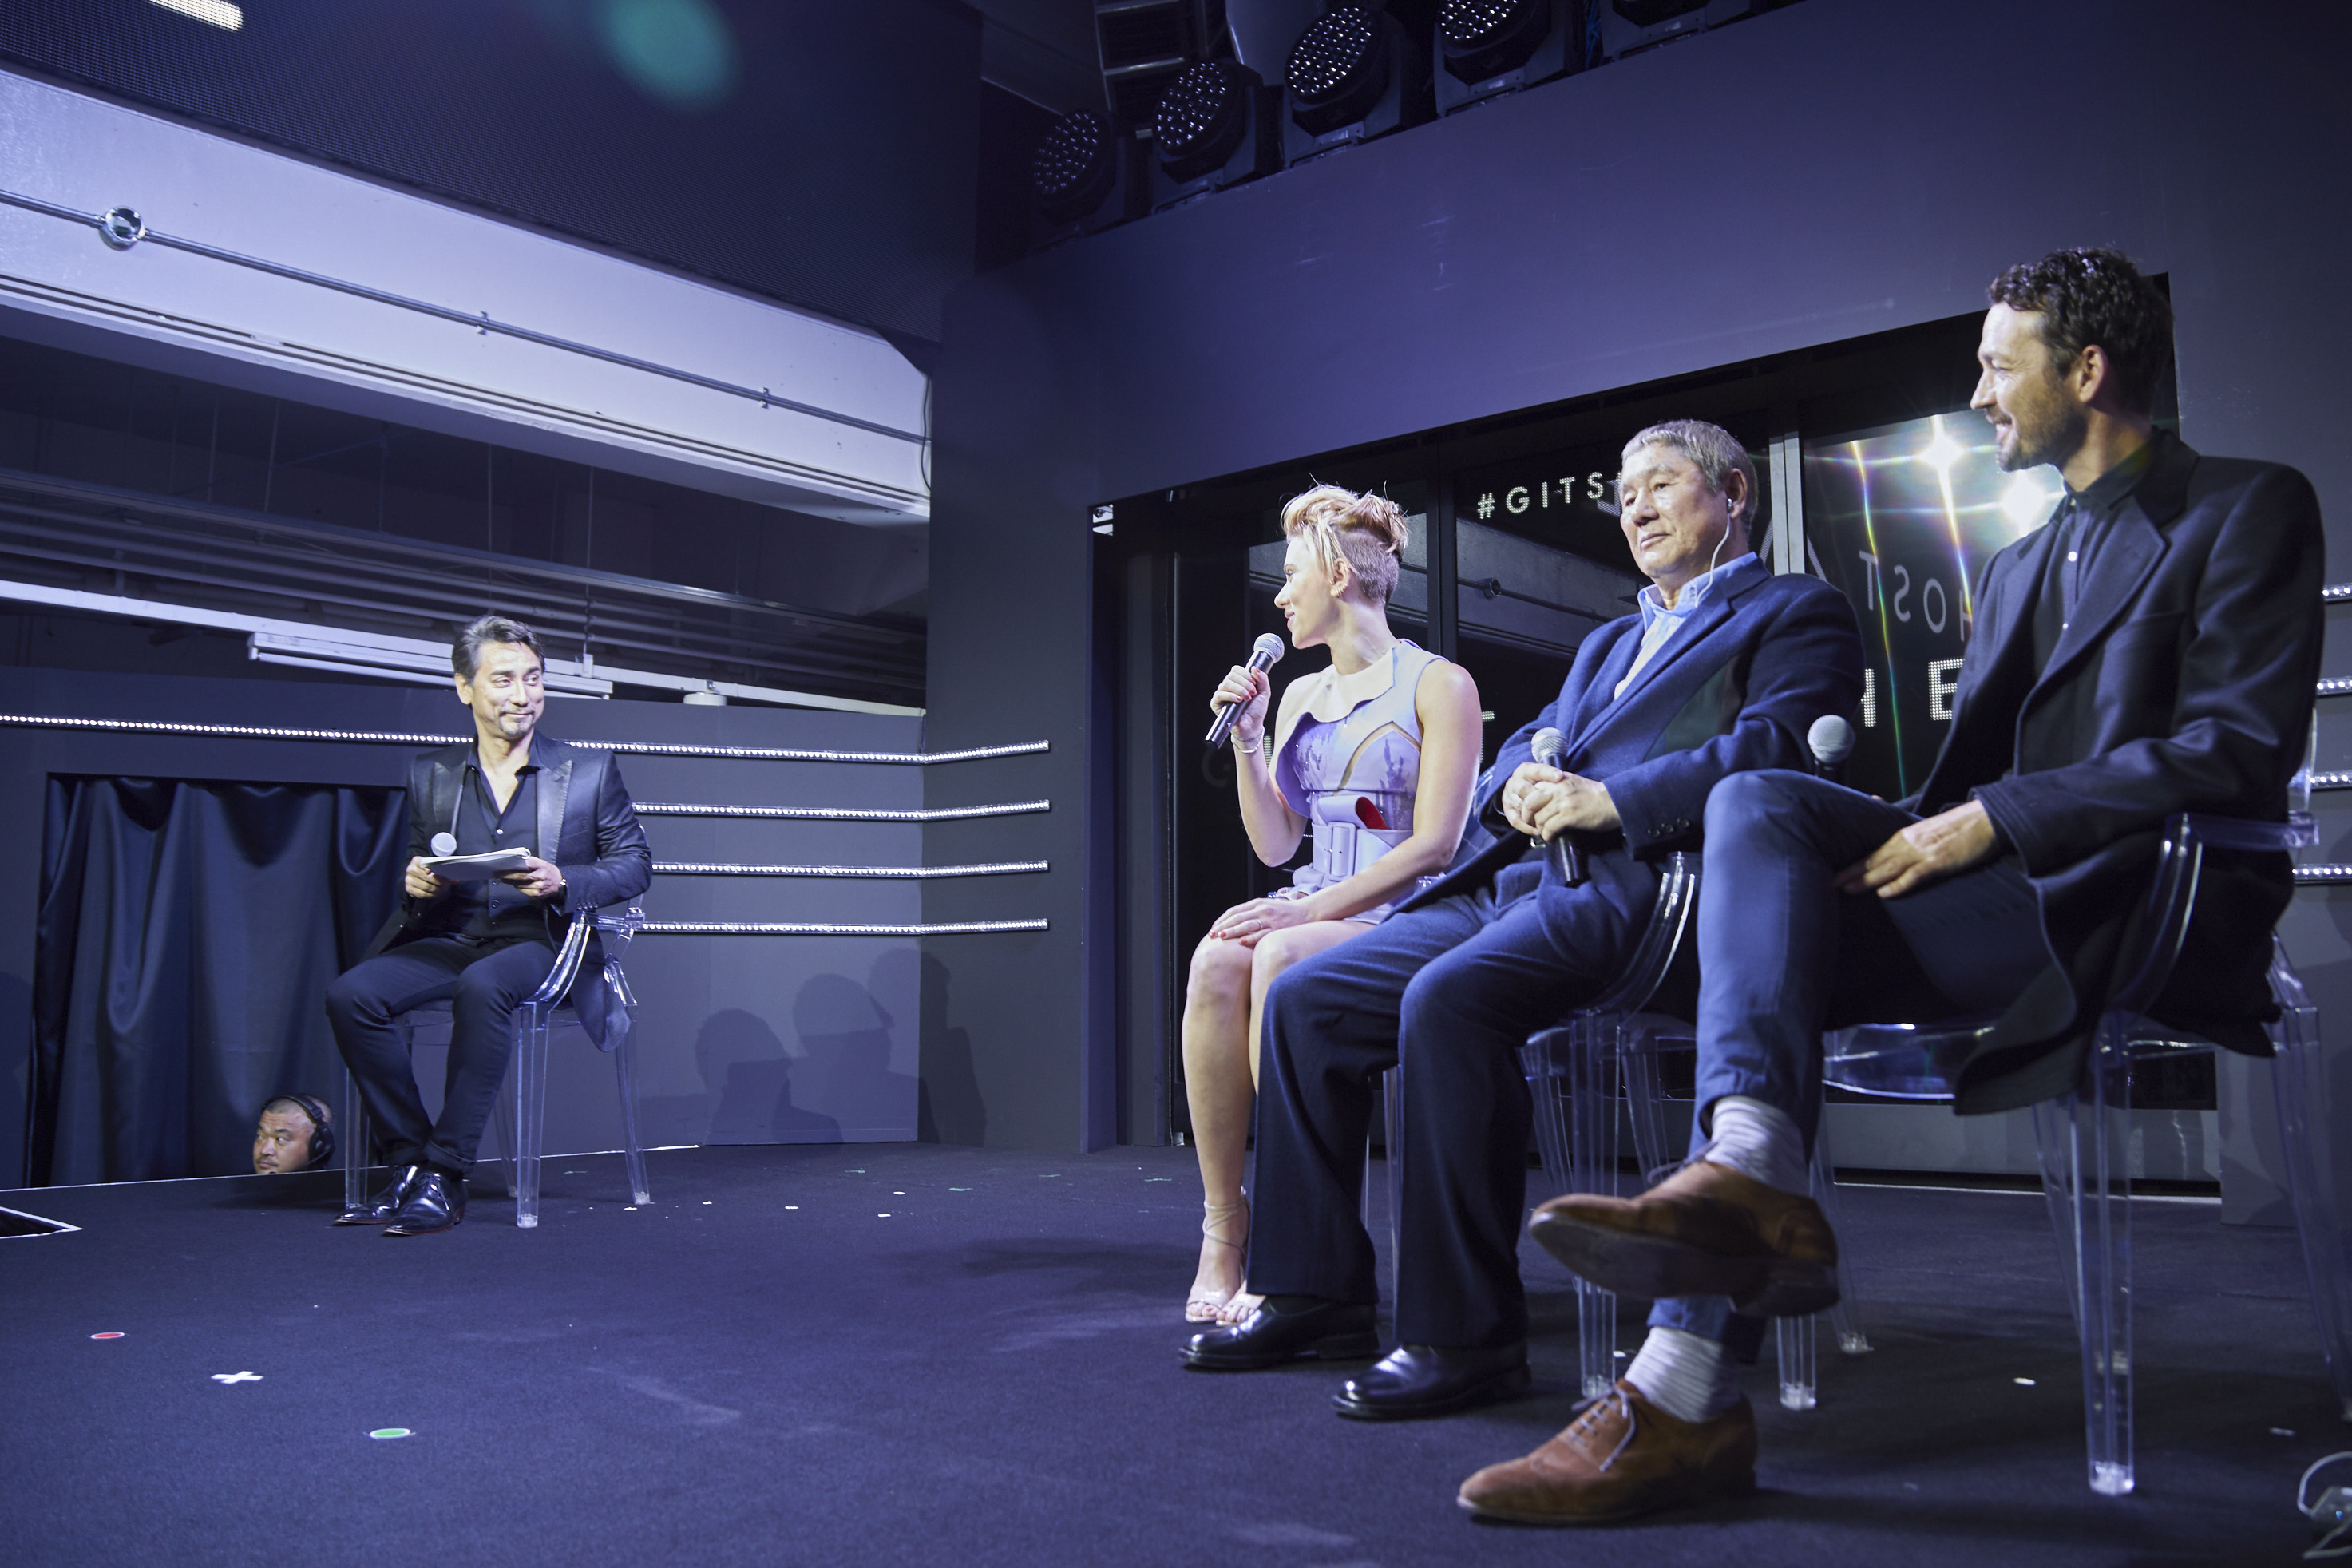 Scarlett Johansson, Takeshi Kitano, and Rupert Sanders getting interviewed during the Ghost in the Shell Fan Event at Tabloid in Tokyo, Japan November 13, 2016